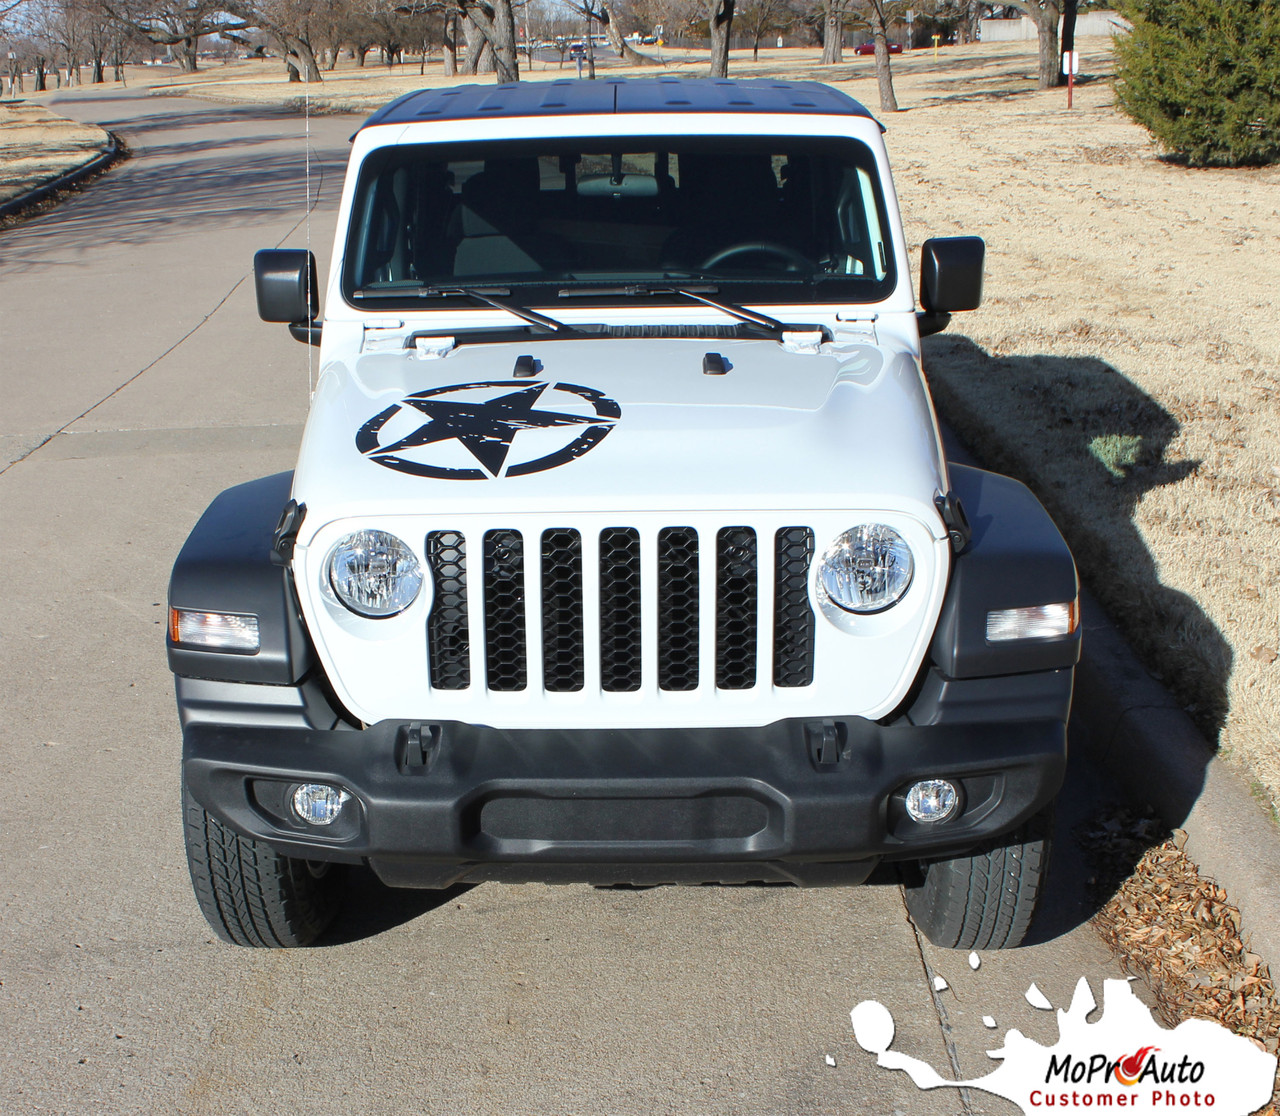 Jeep Gladiator Hood Decals, Jeep Gladiator Stripes, Gladiator Graphics